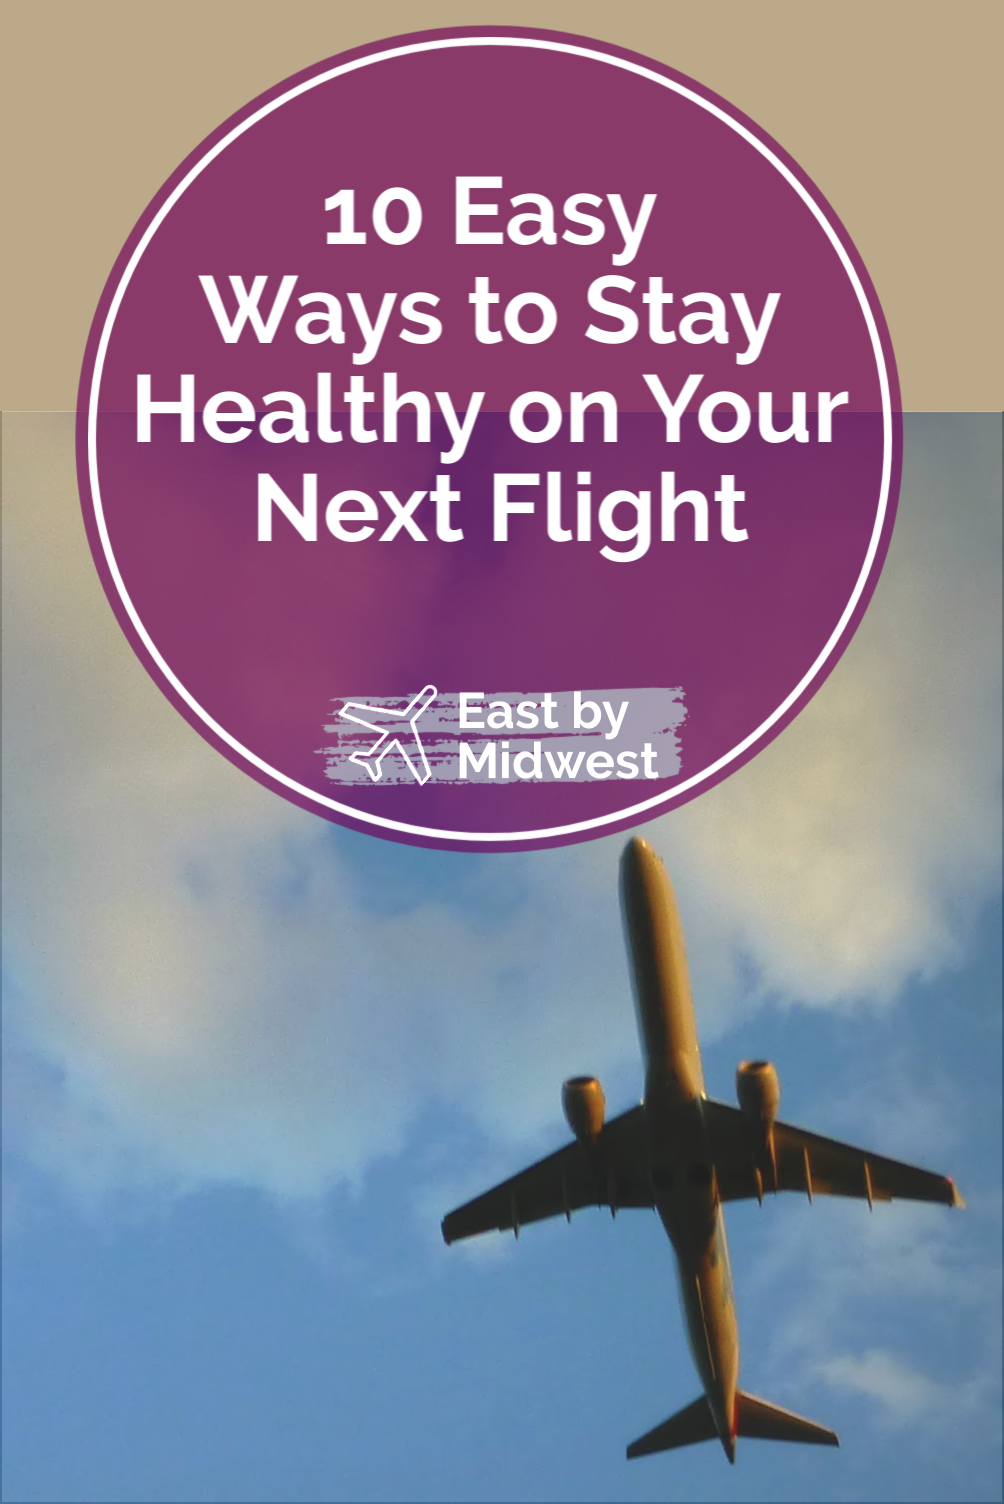 10 Easy Ways to Stay Healthy on Your Next Flight